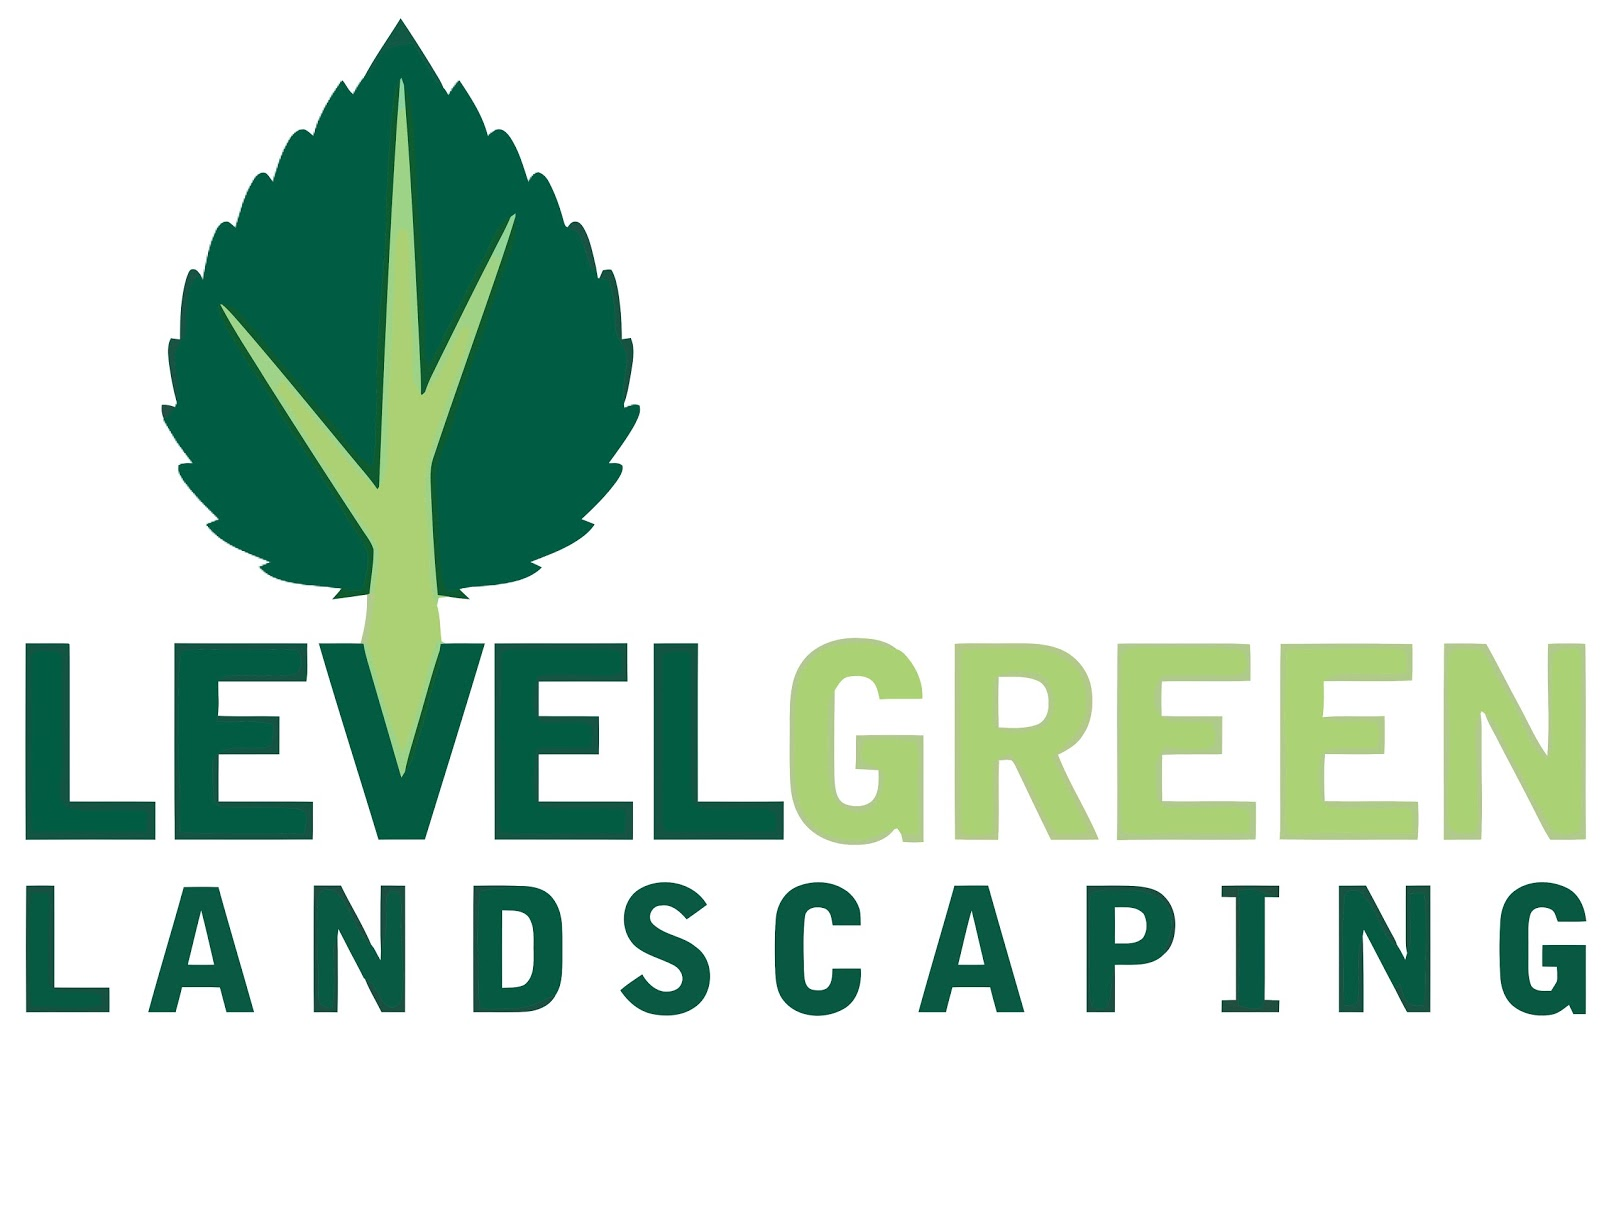 13 rare landscaping skills we d love to see on your resume